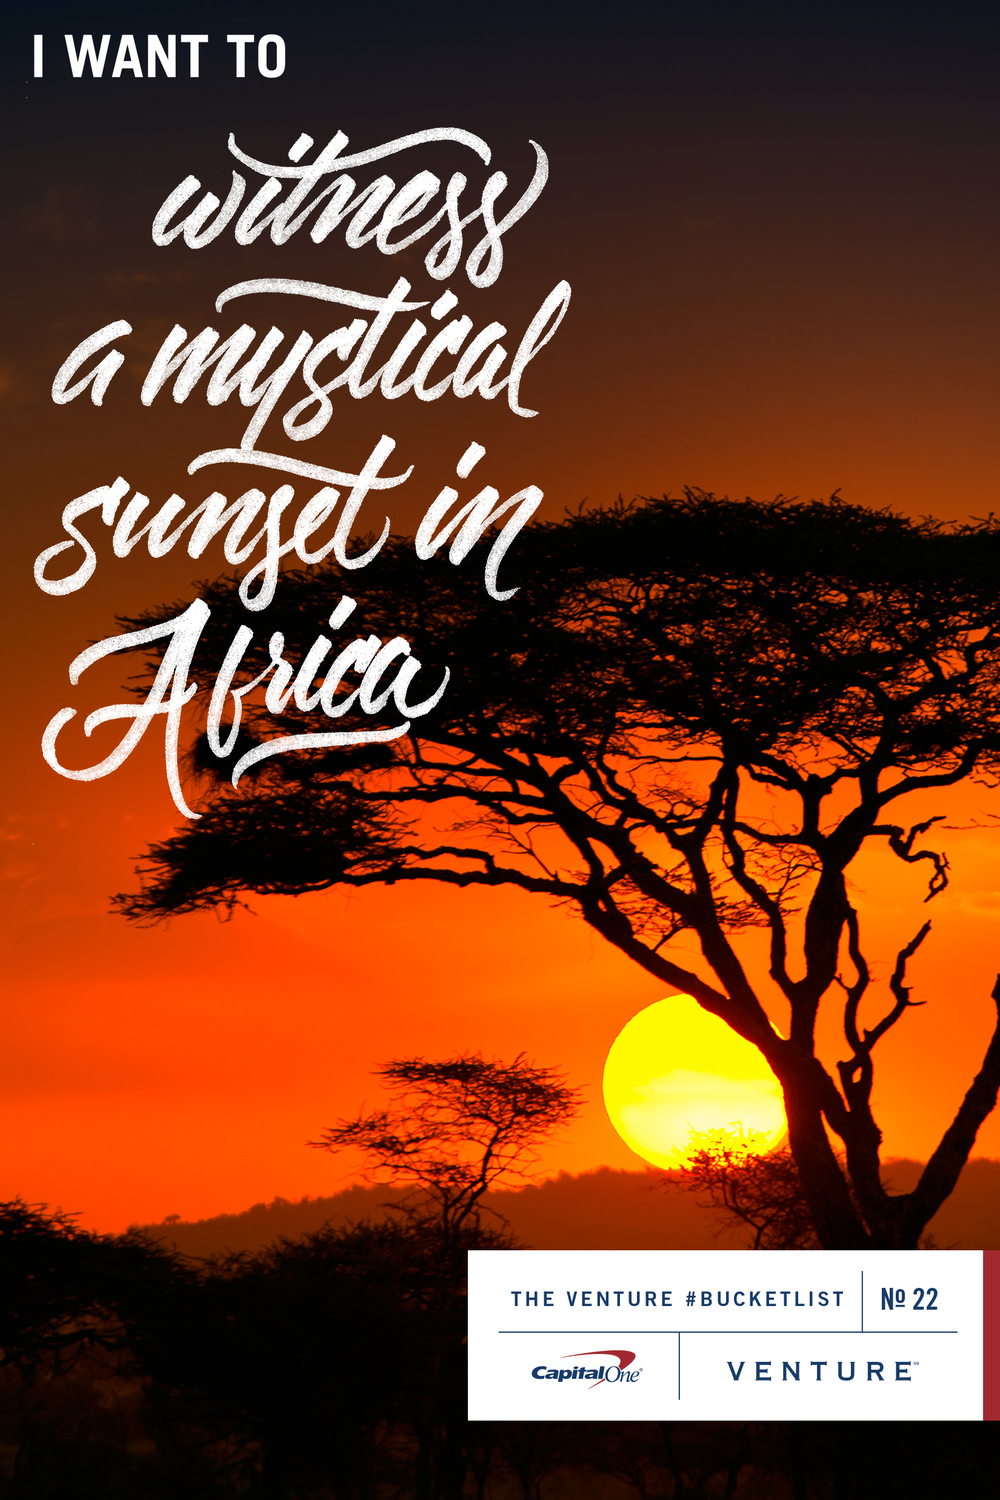 http://venture.tumblr.com/post/55786134405/bucketlist-item-no-21-african-sunset-inspired